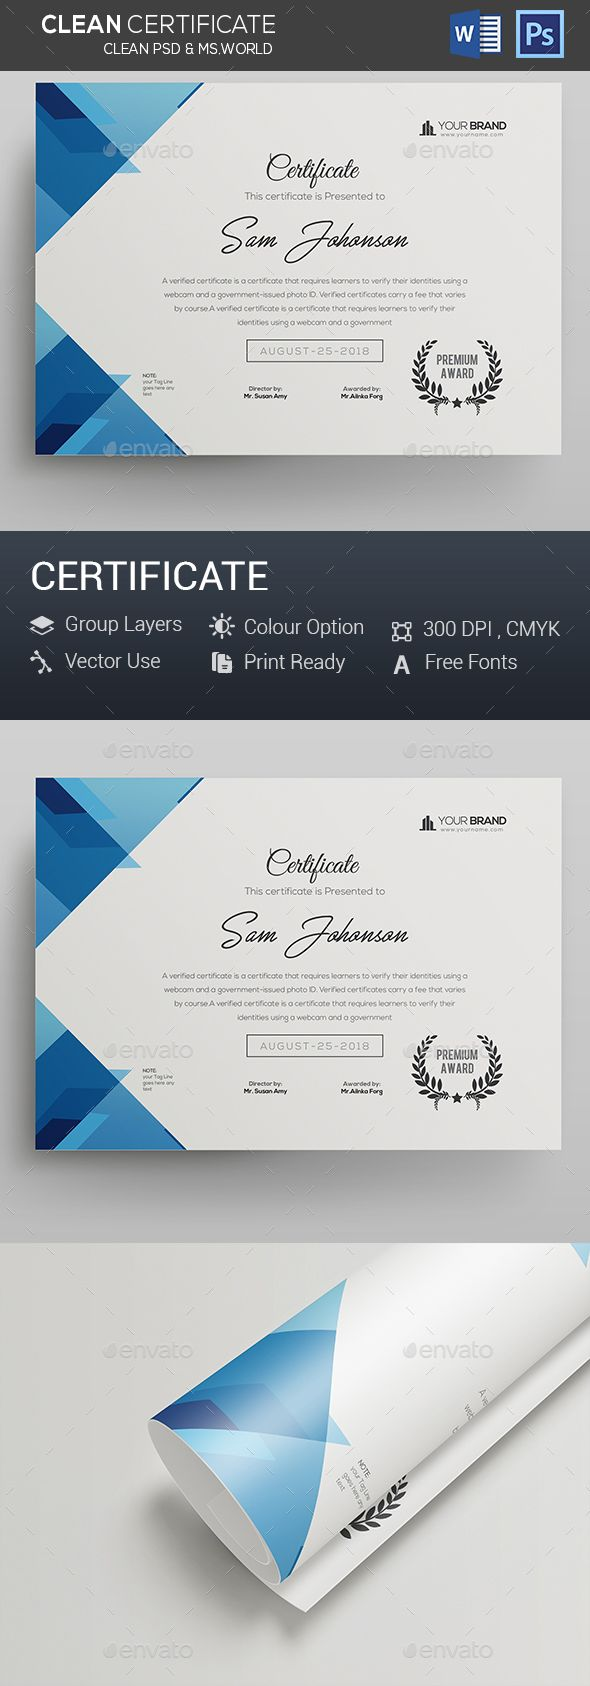 Certificate #landscape certificate #certificate black  • Download here → https://graphicriver.net/item/certificate/20263379?ref=pxcr